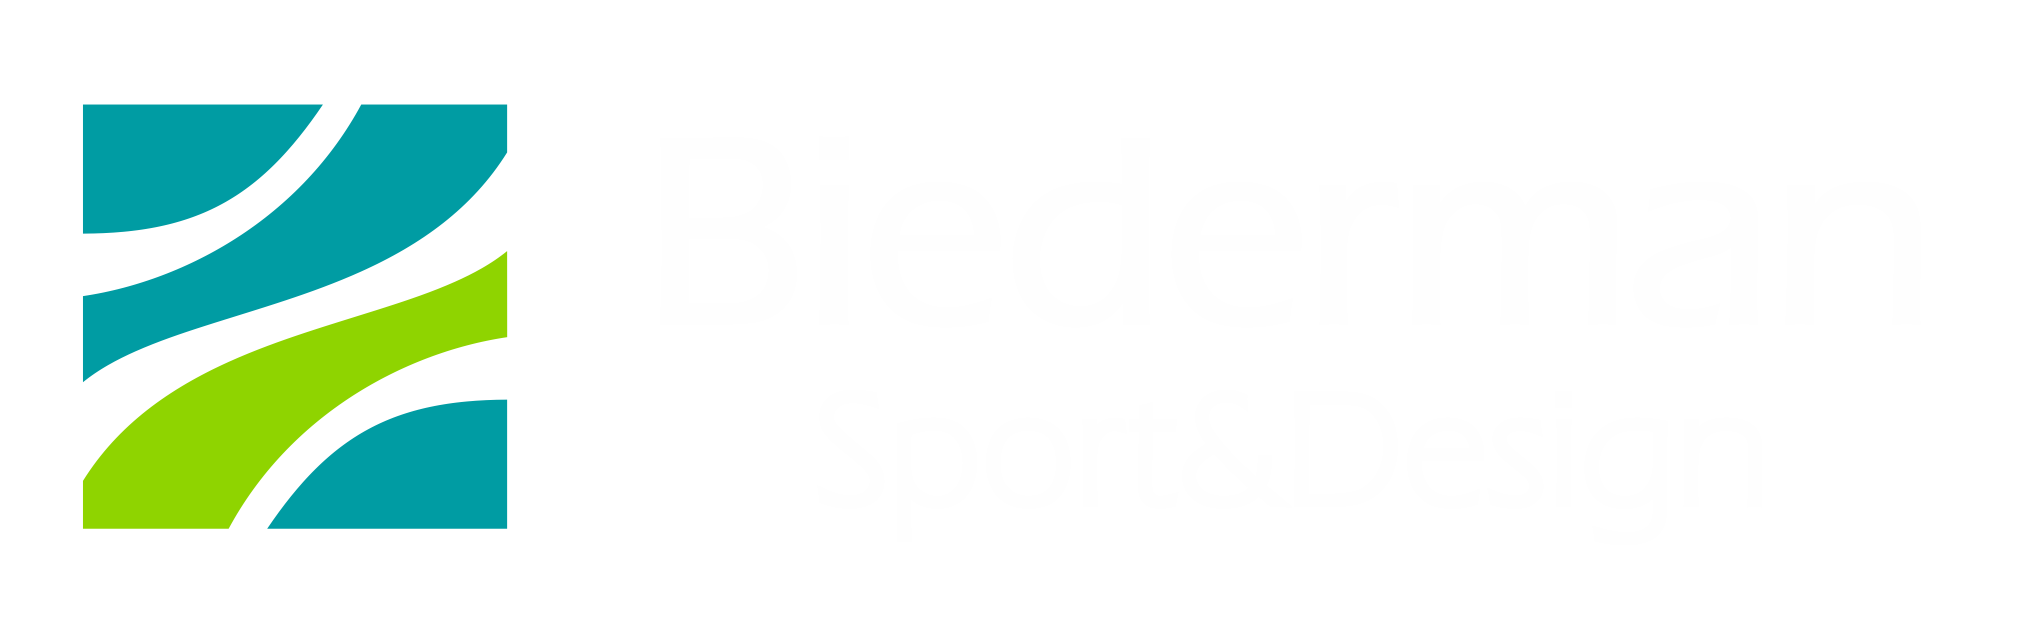 Biederman Sport&Design